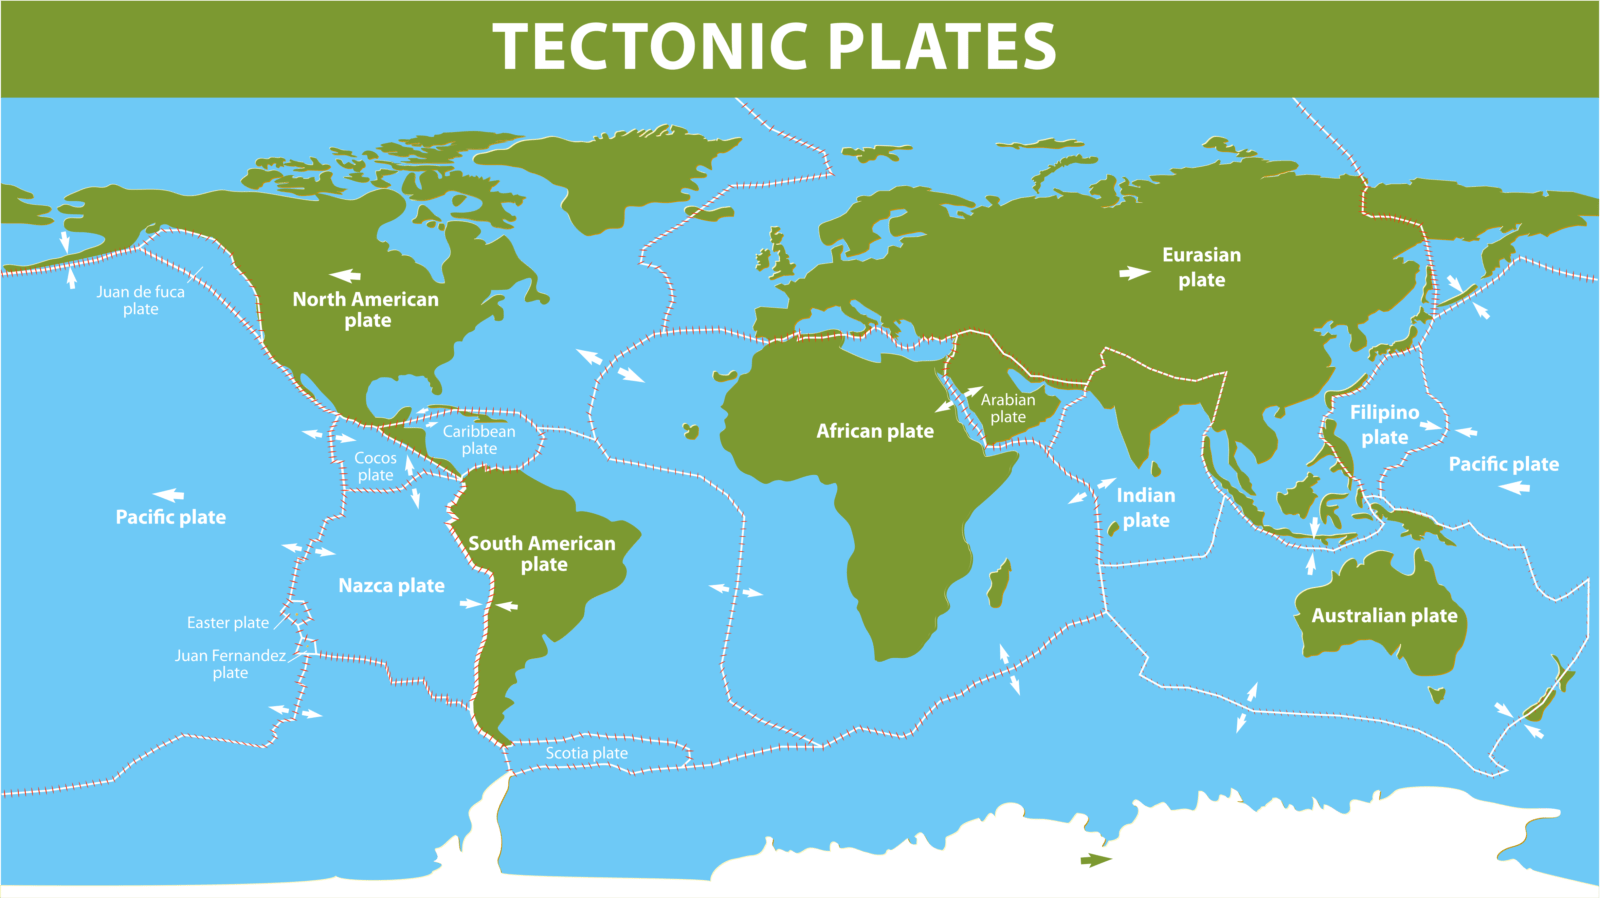 A map to show the main tectonic plates